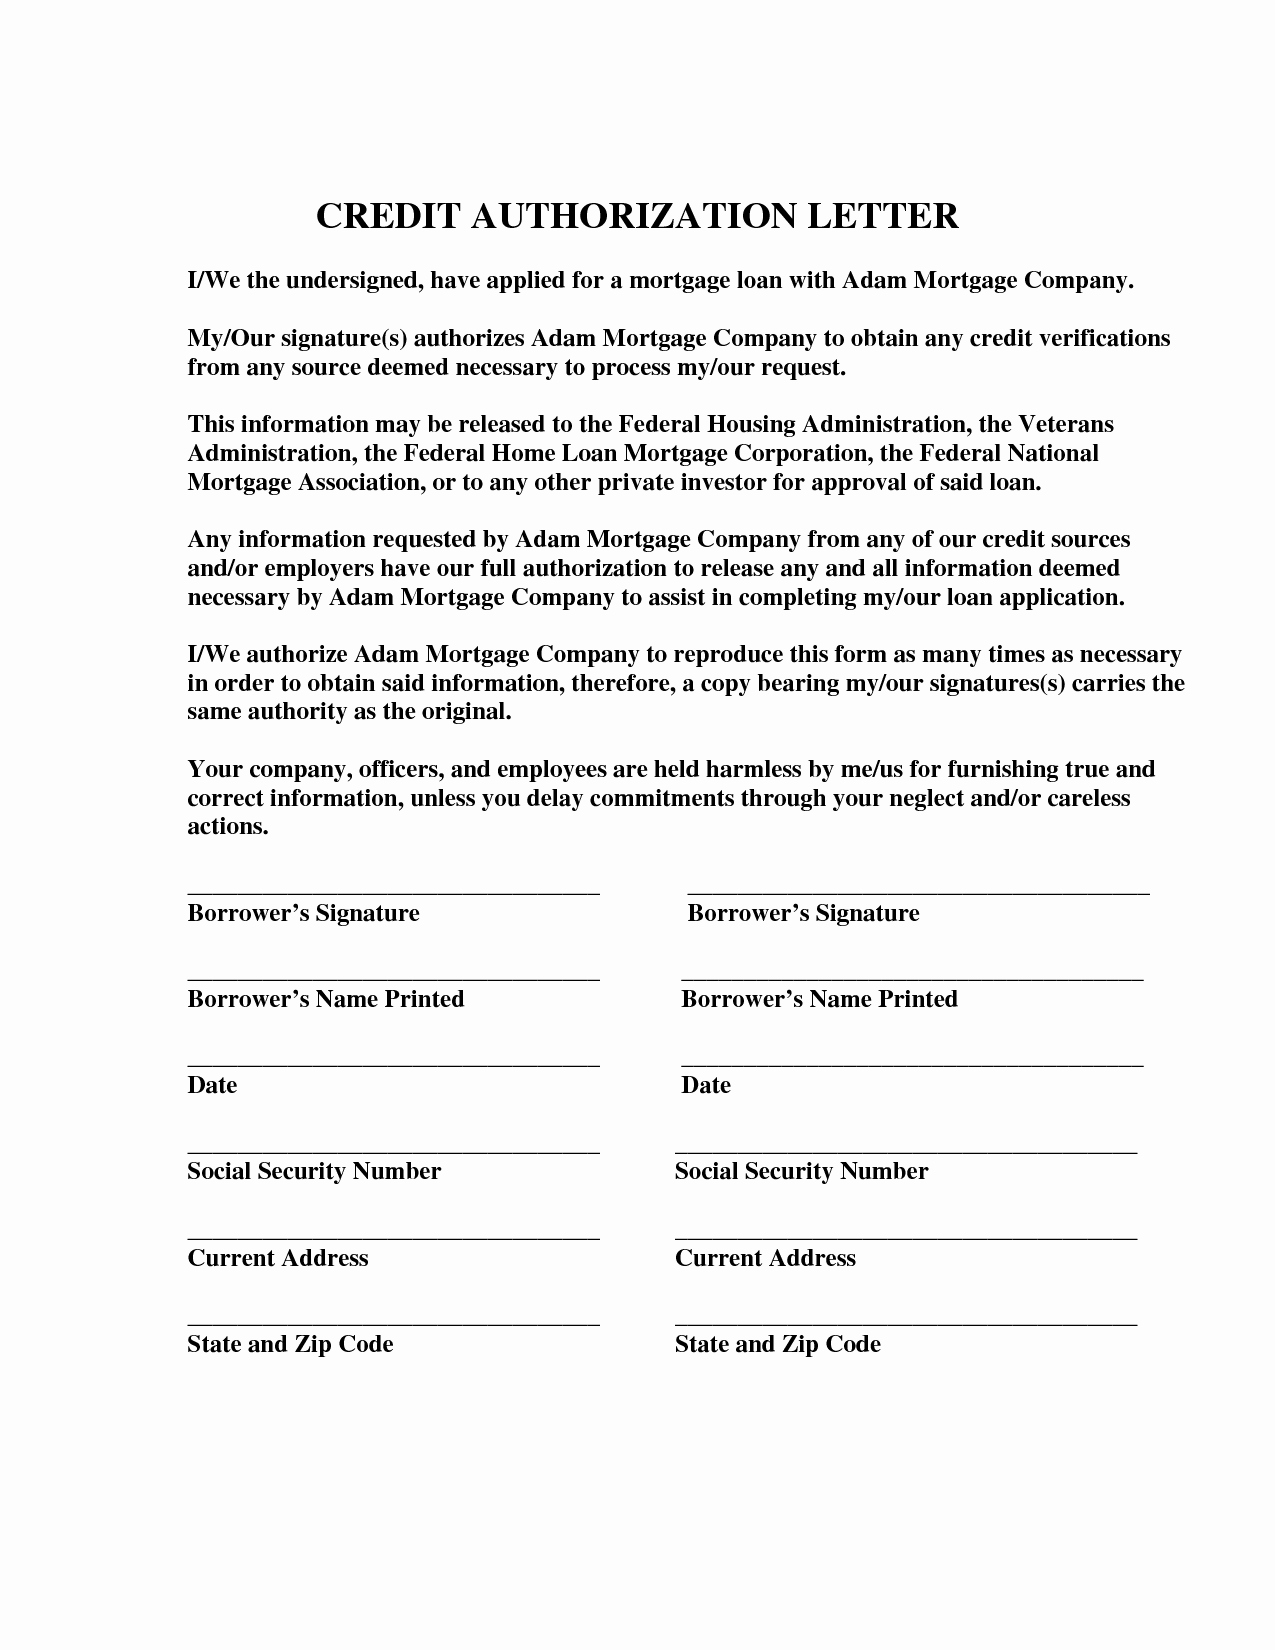 Credit Card Authorization Letter Template Luxury Credit Card Authorization Letter format Best Template